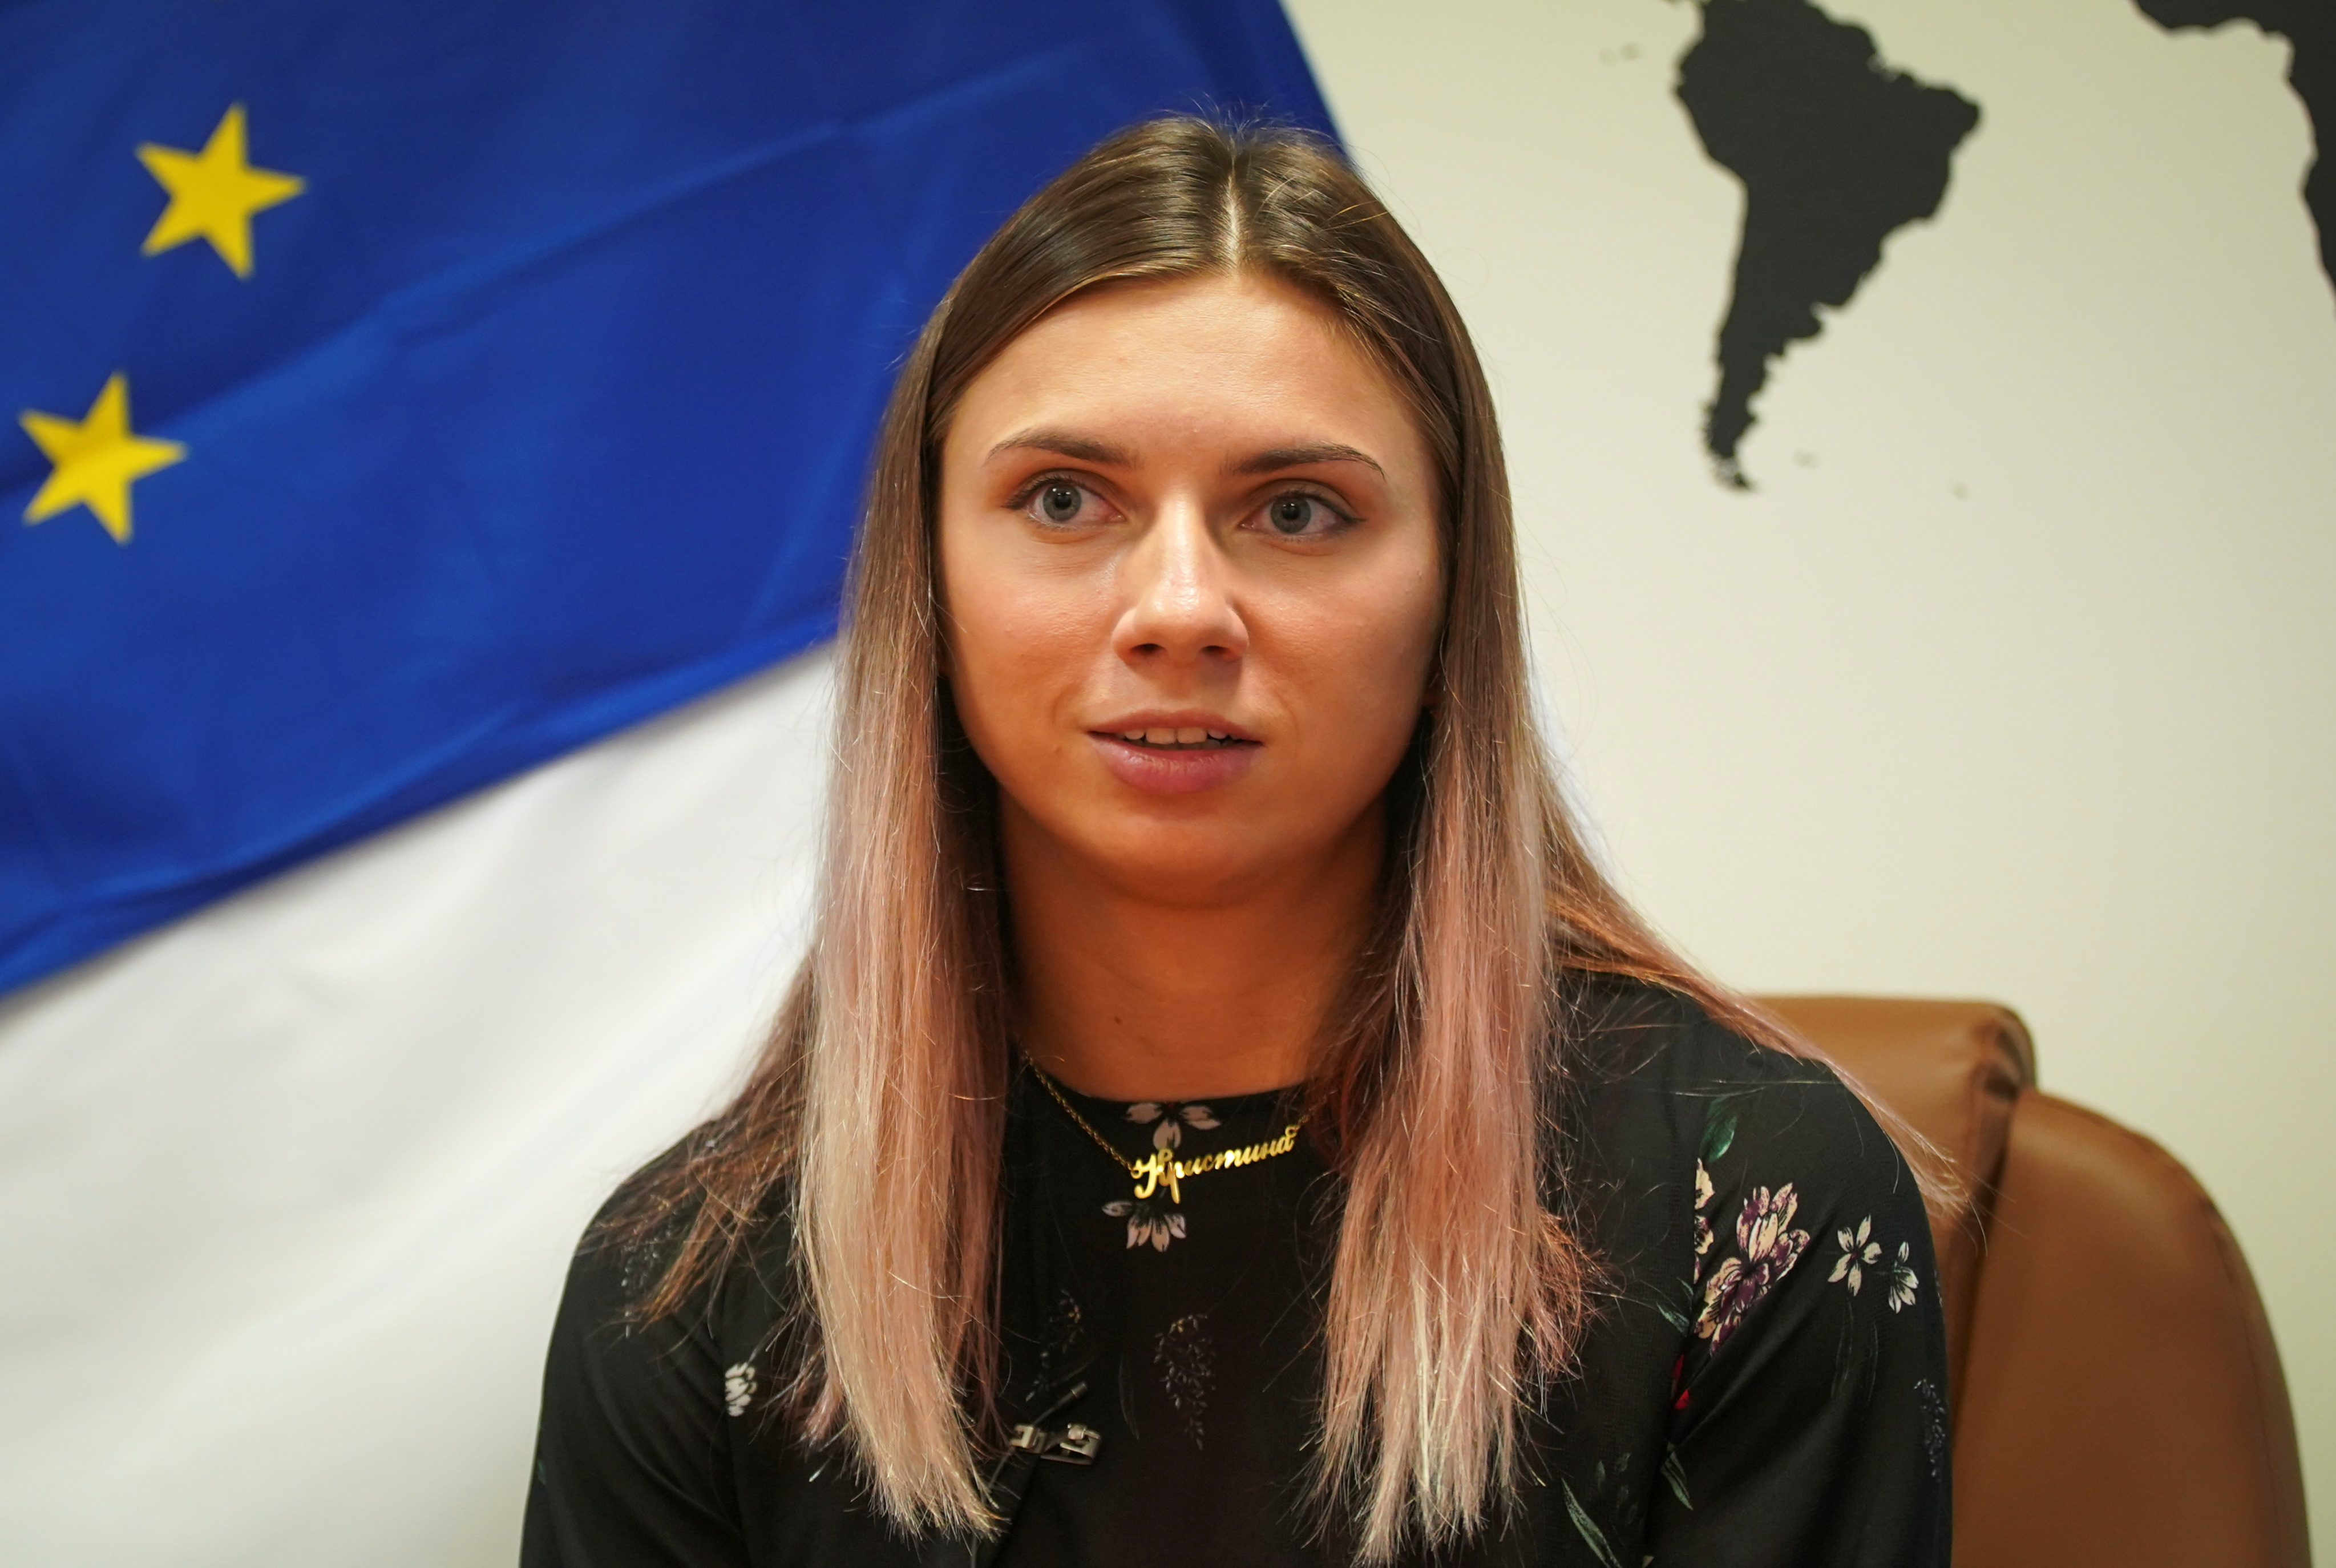 Belarusian sprinter Krystsina Tsimanouskaya, who left the Olympic Games in Tokyo and seeks asylum in Poland, attends an interview with Reuters in Warsaw, Poland August 5, 2021. REUTERS/Darek Golik